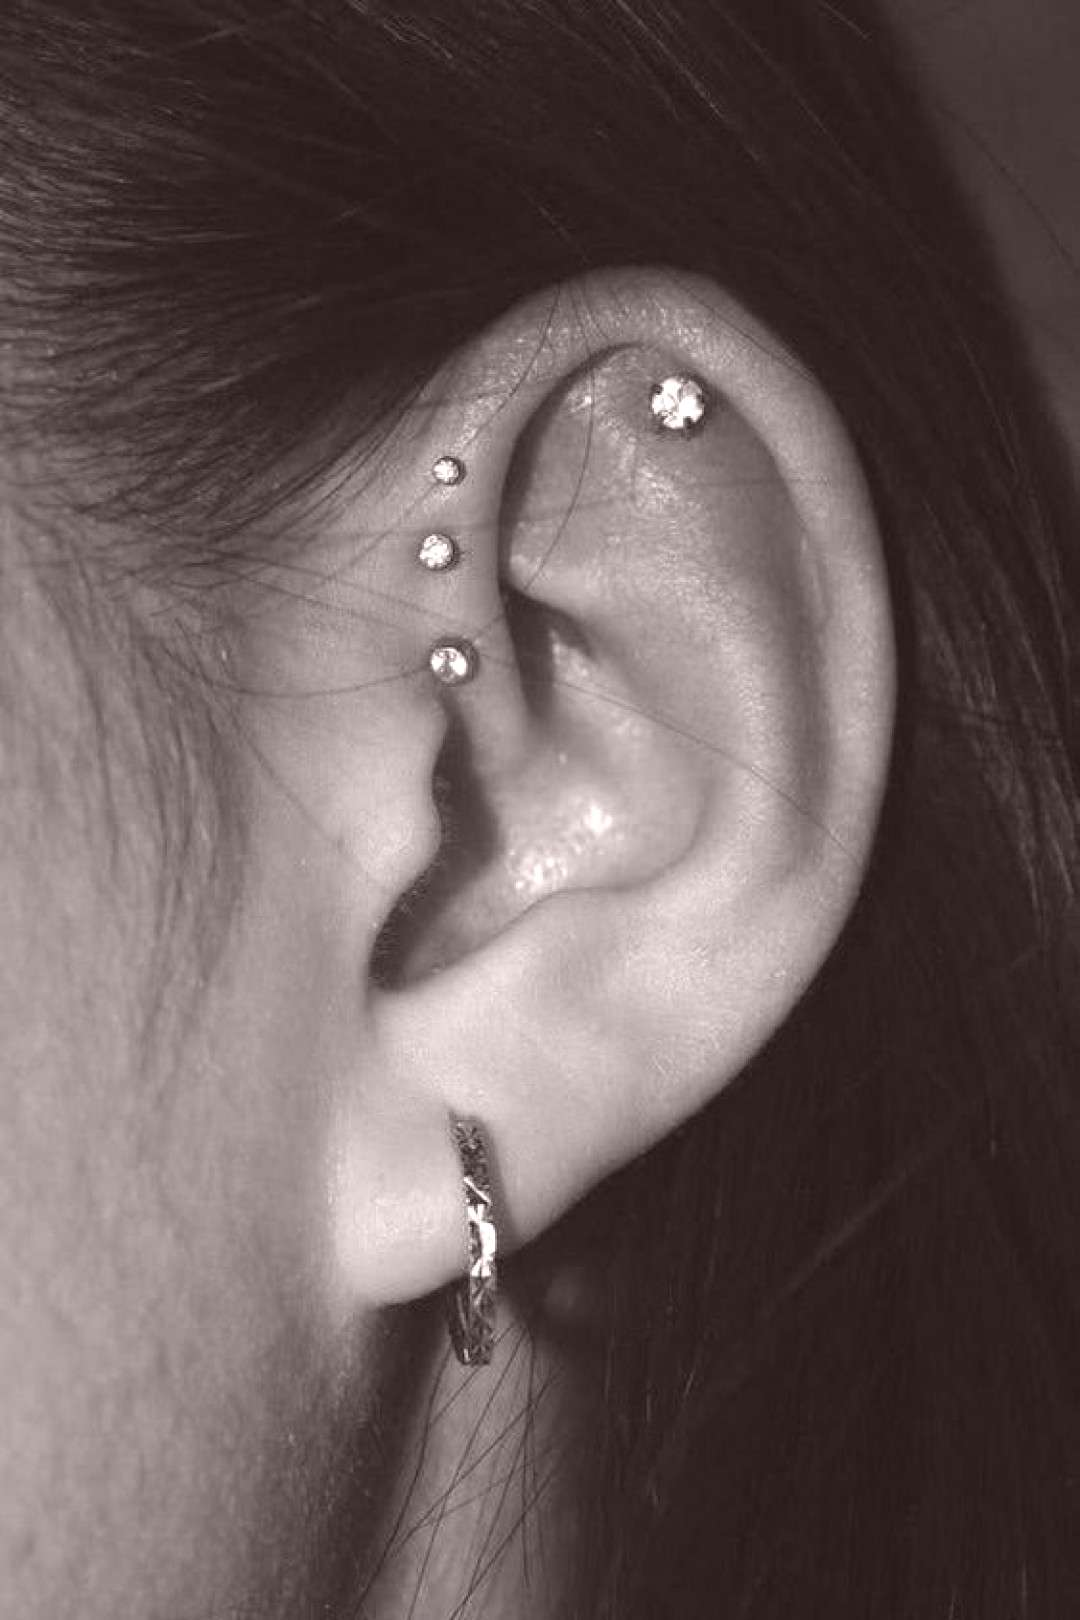 77 Ear piercing ideas for Women. Cute and Beautiful Ear piercing Ideas.